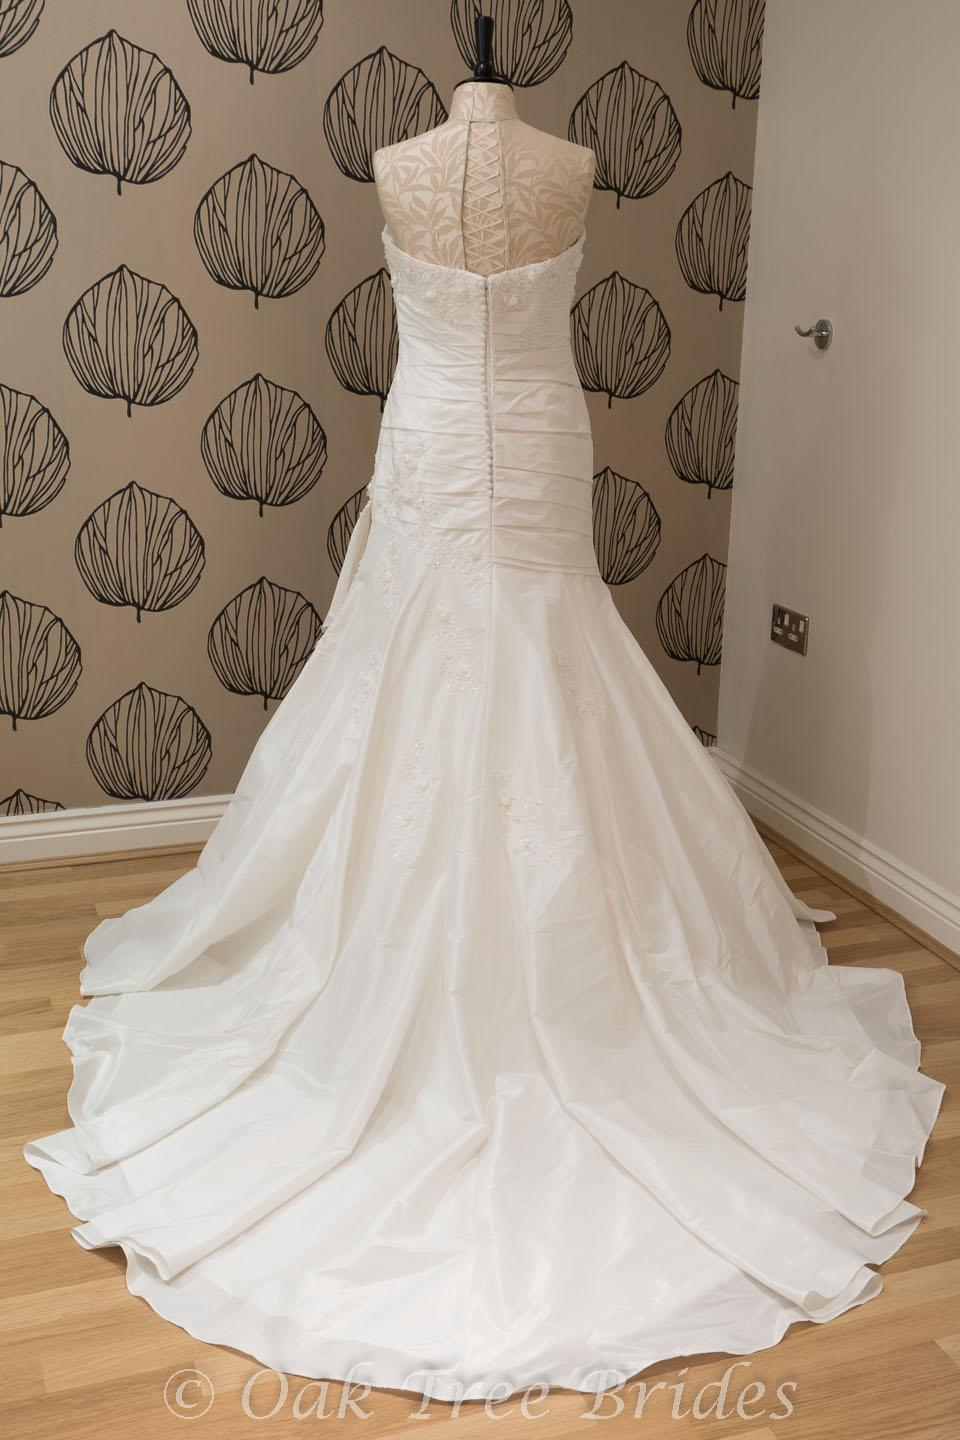 La sposa wedding dresses prices uk for Cost of a wedding dress